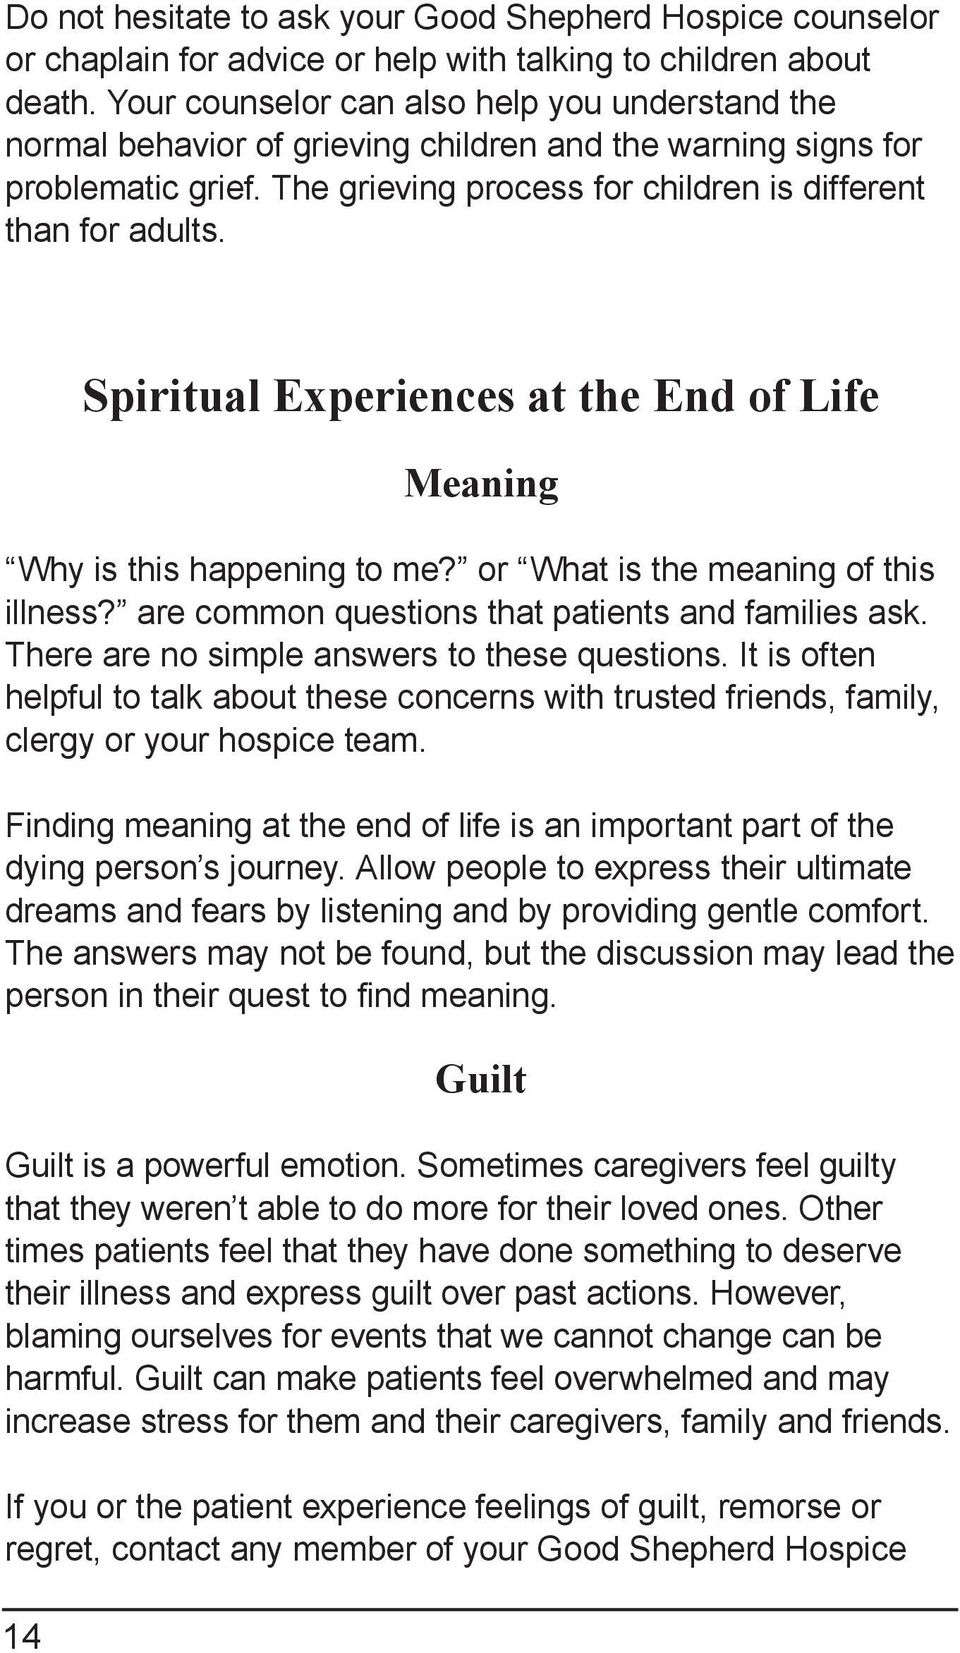 14 Spiritual Experiences at the End of Life Meaning Why is this happening to me? or What is the meaning of this illness? are common questions that patients and families ask.